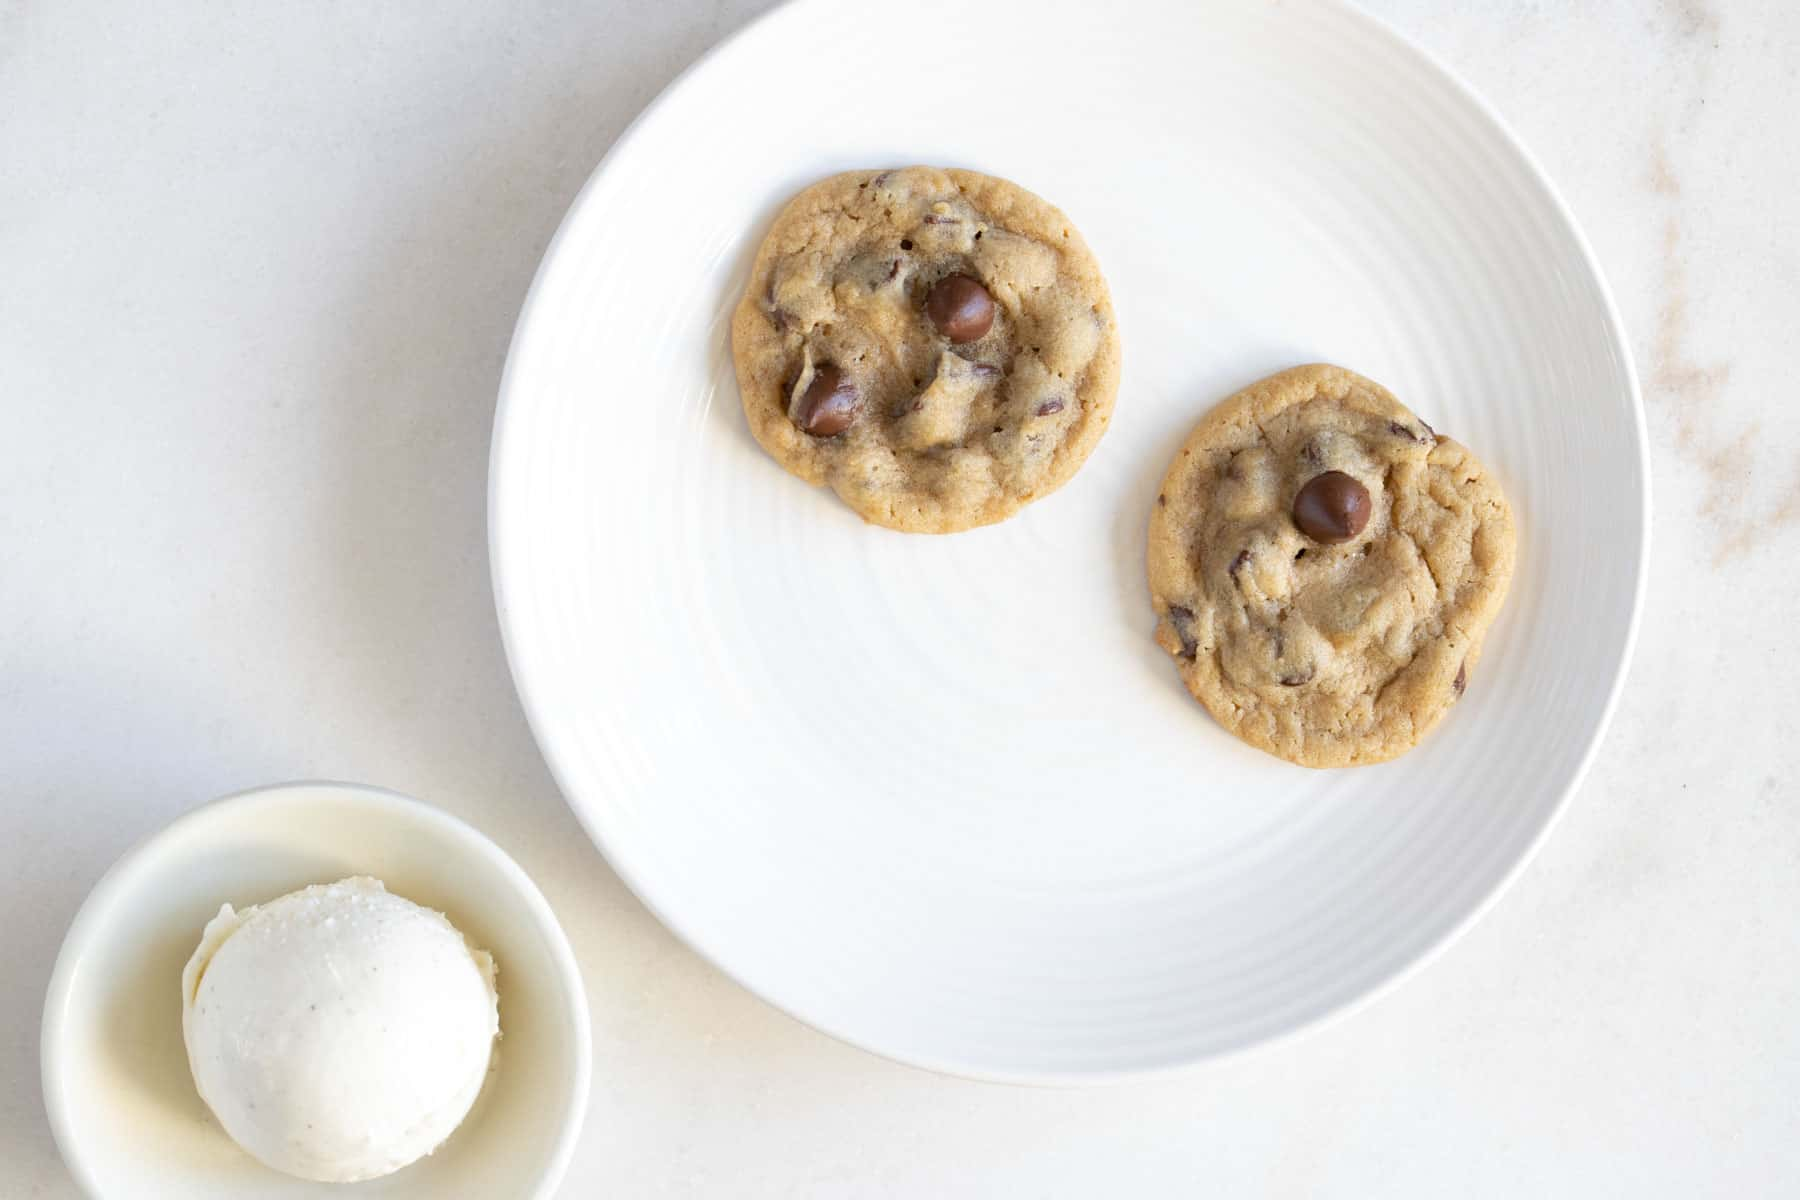 two chocolate chip cookies on a plate with a scoop of ice cream in a bowl